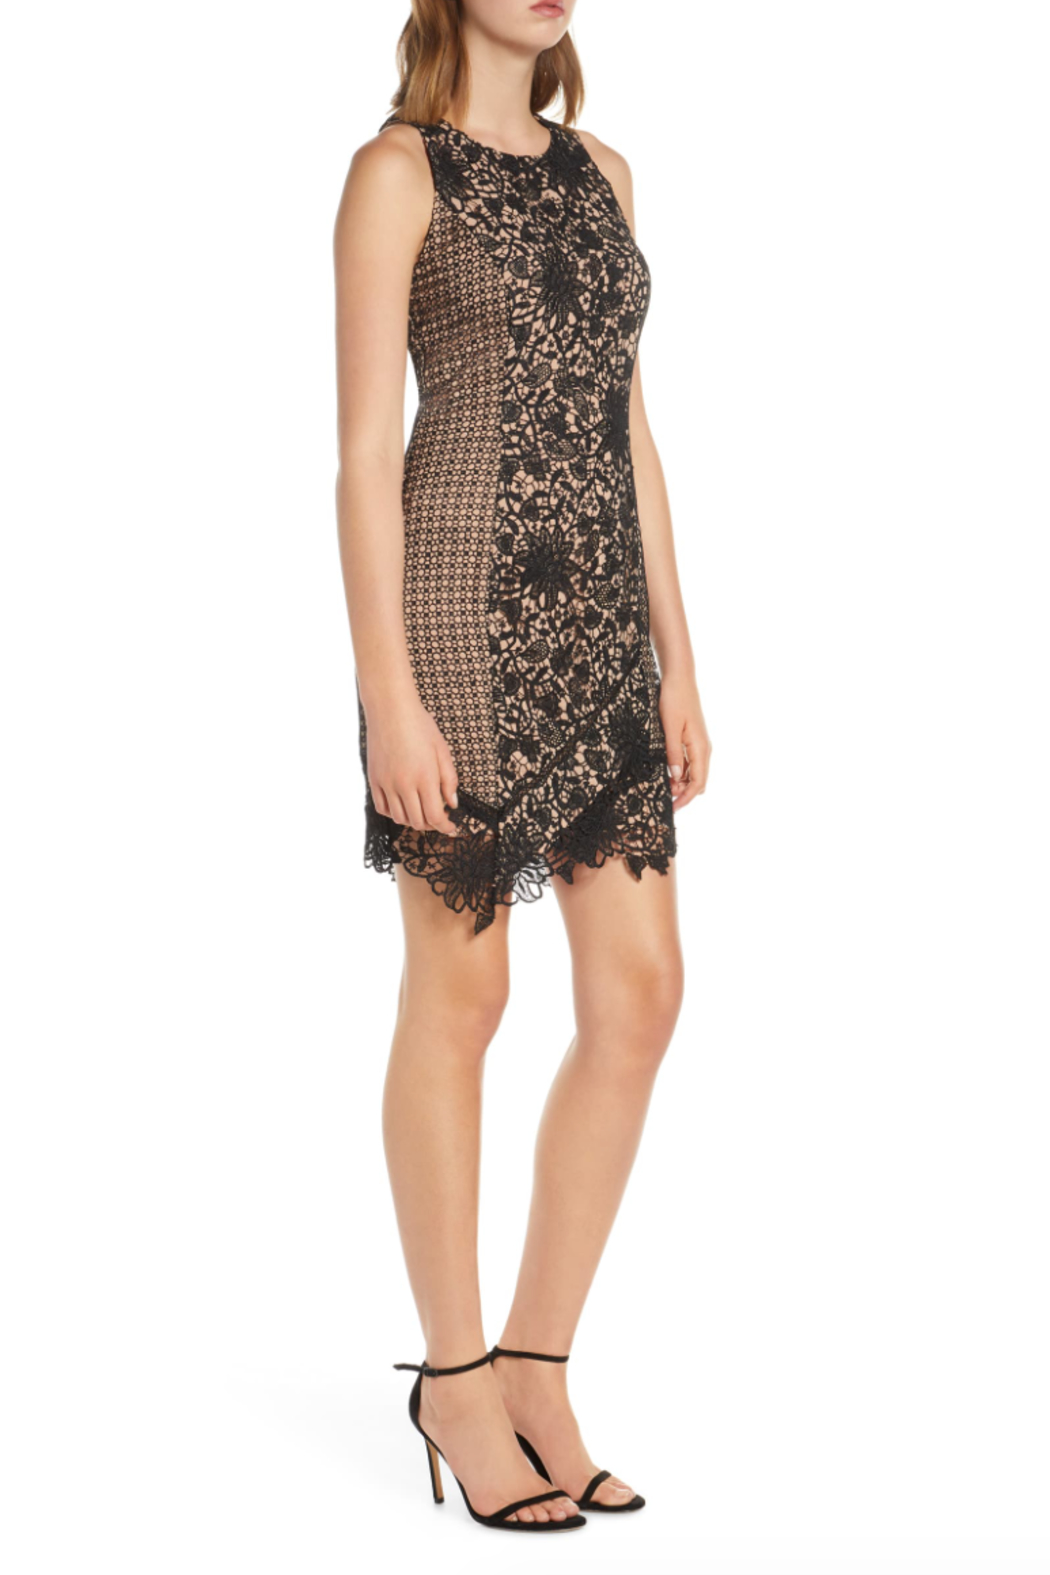 Adelyn Rae Alessia Lace Dress - Side Cropped Image